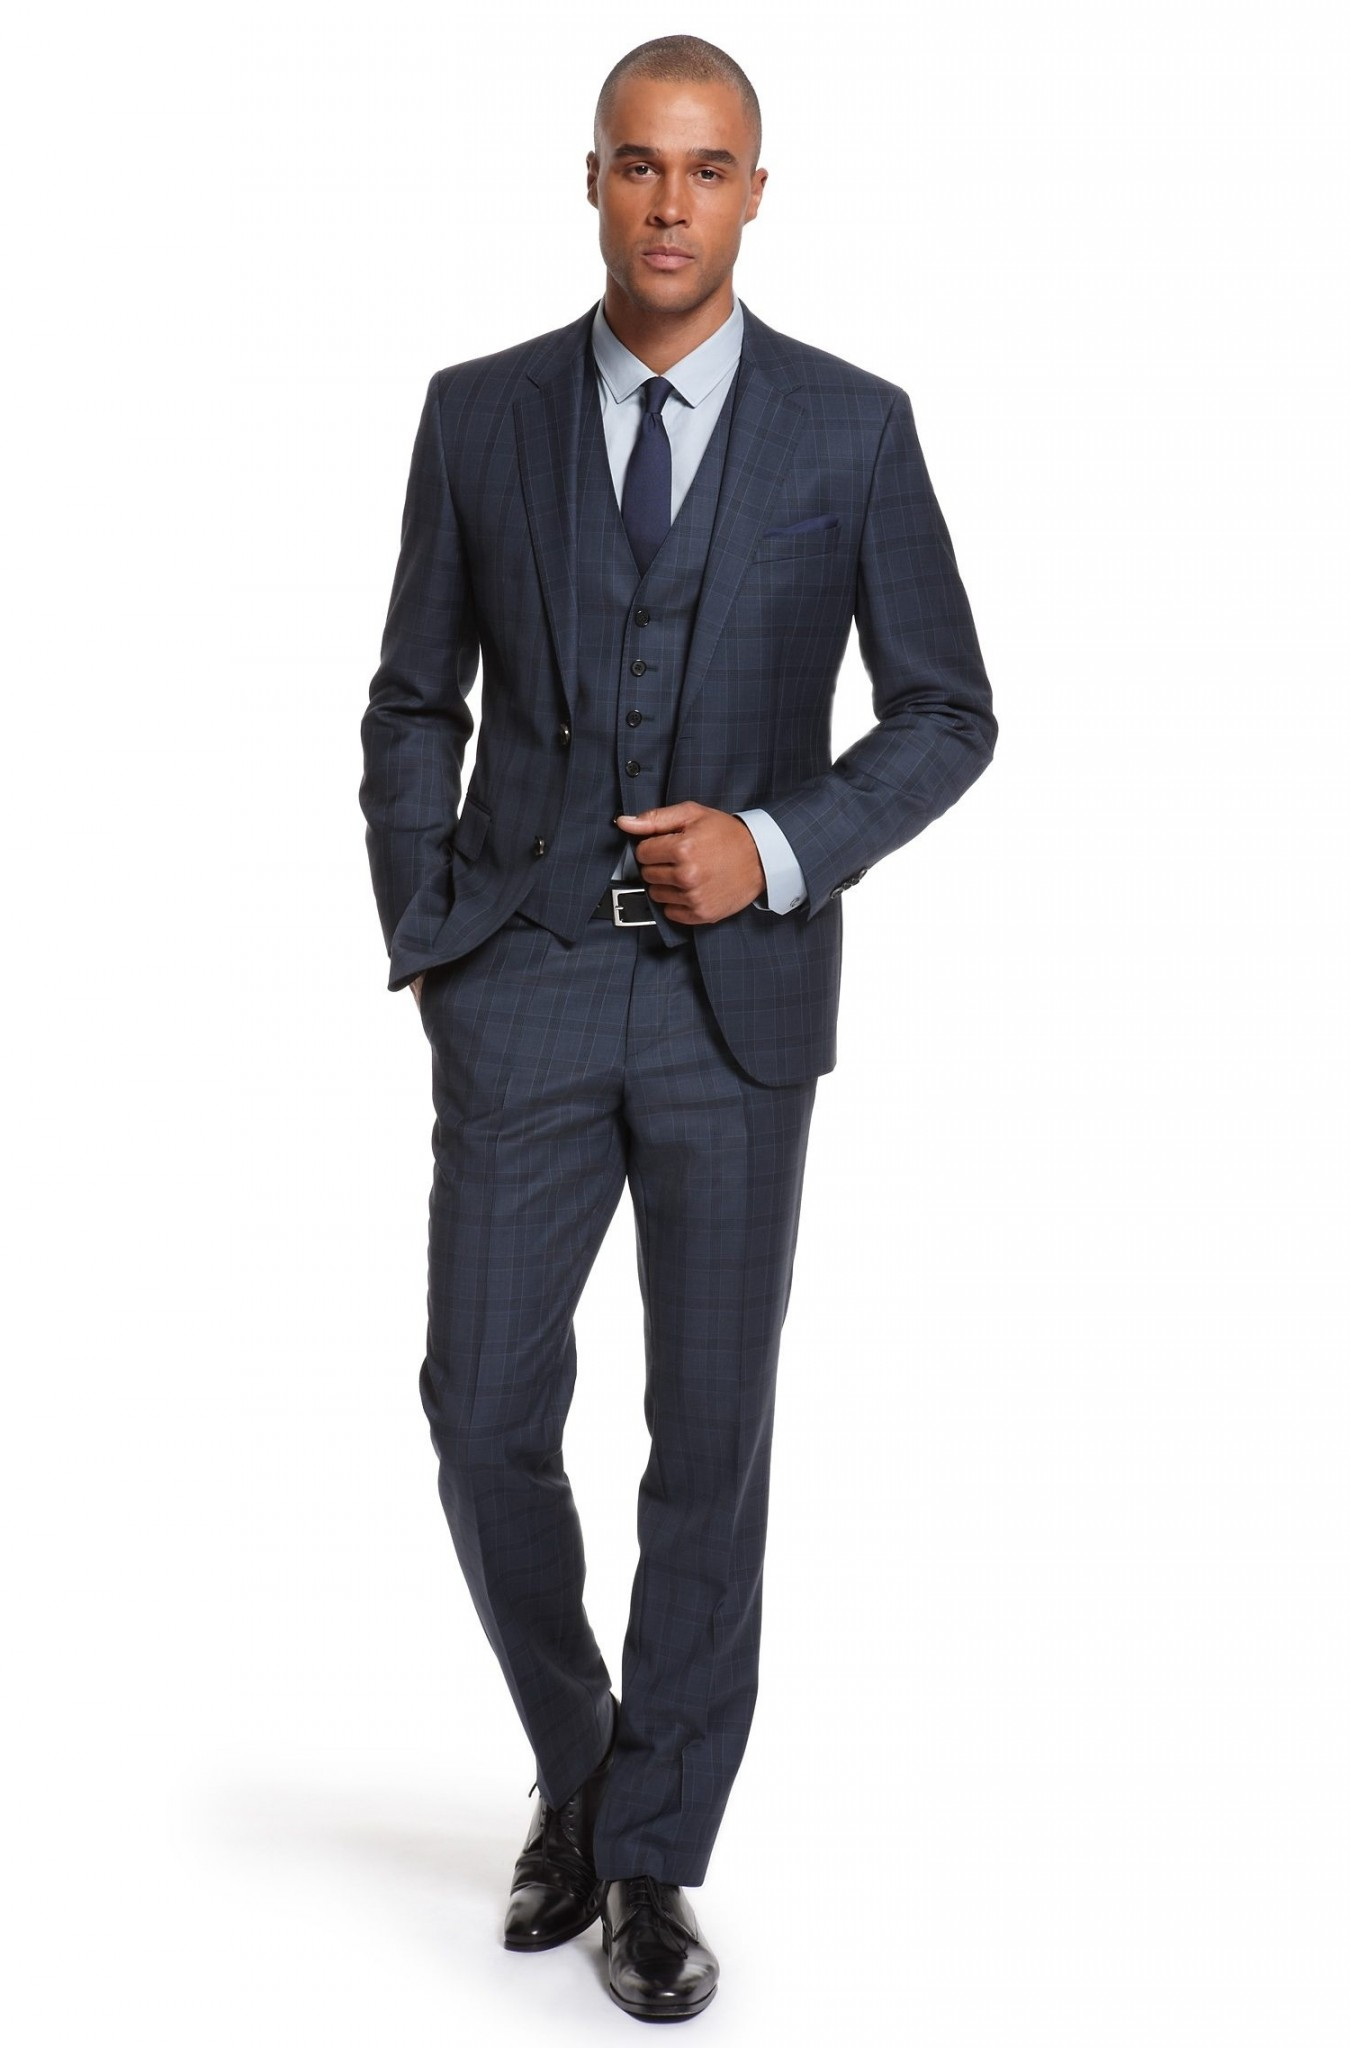 Here you can veiw some amazing men formal suits.